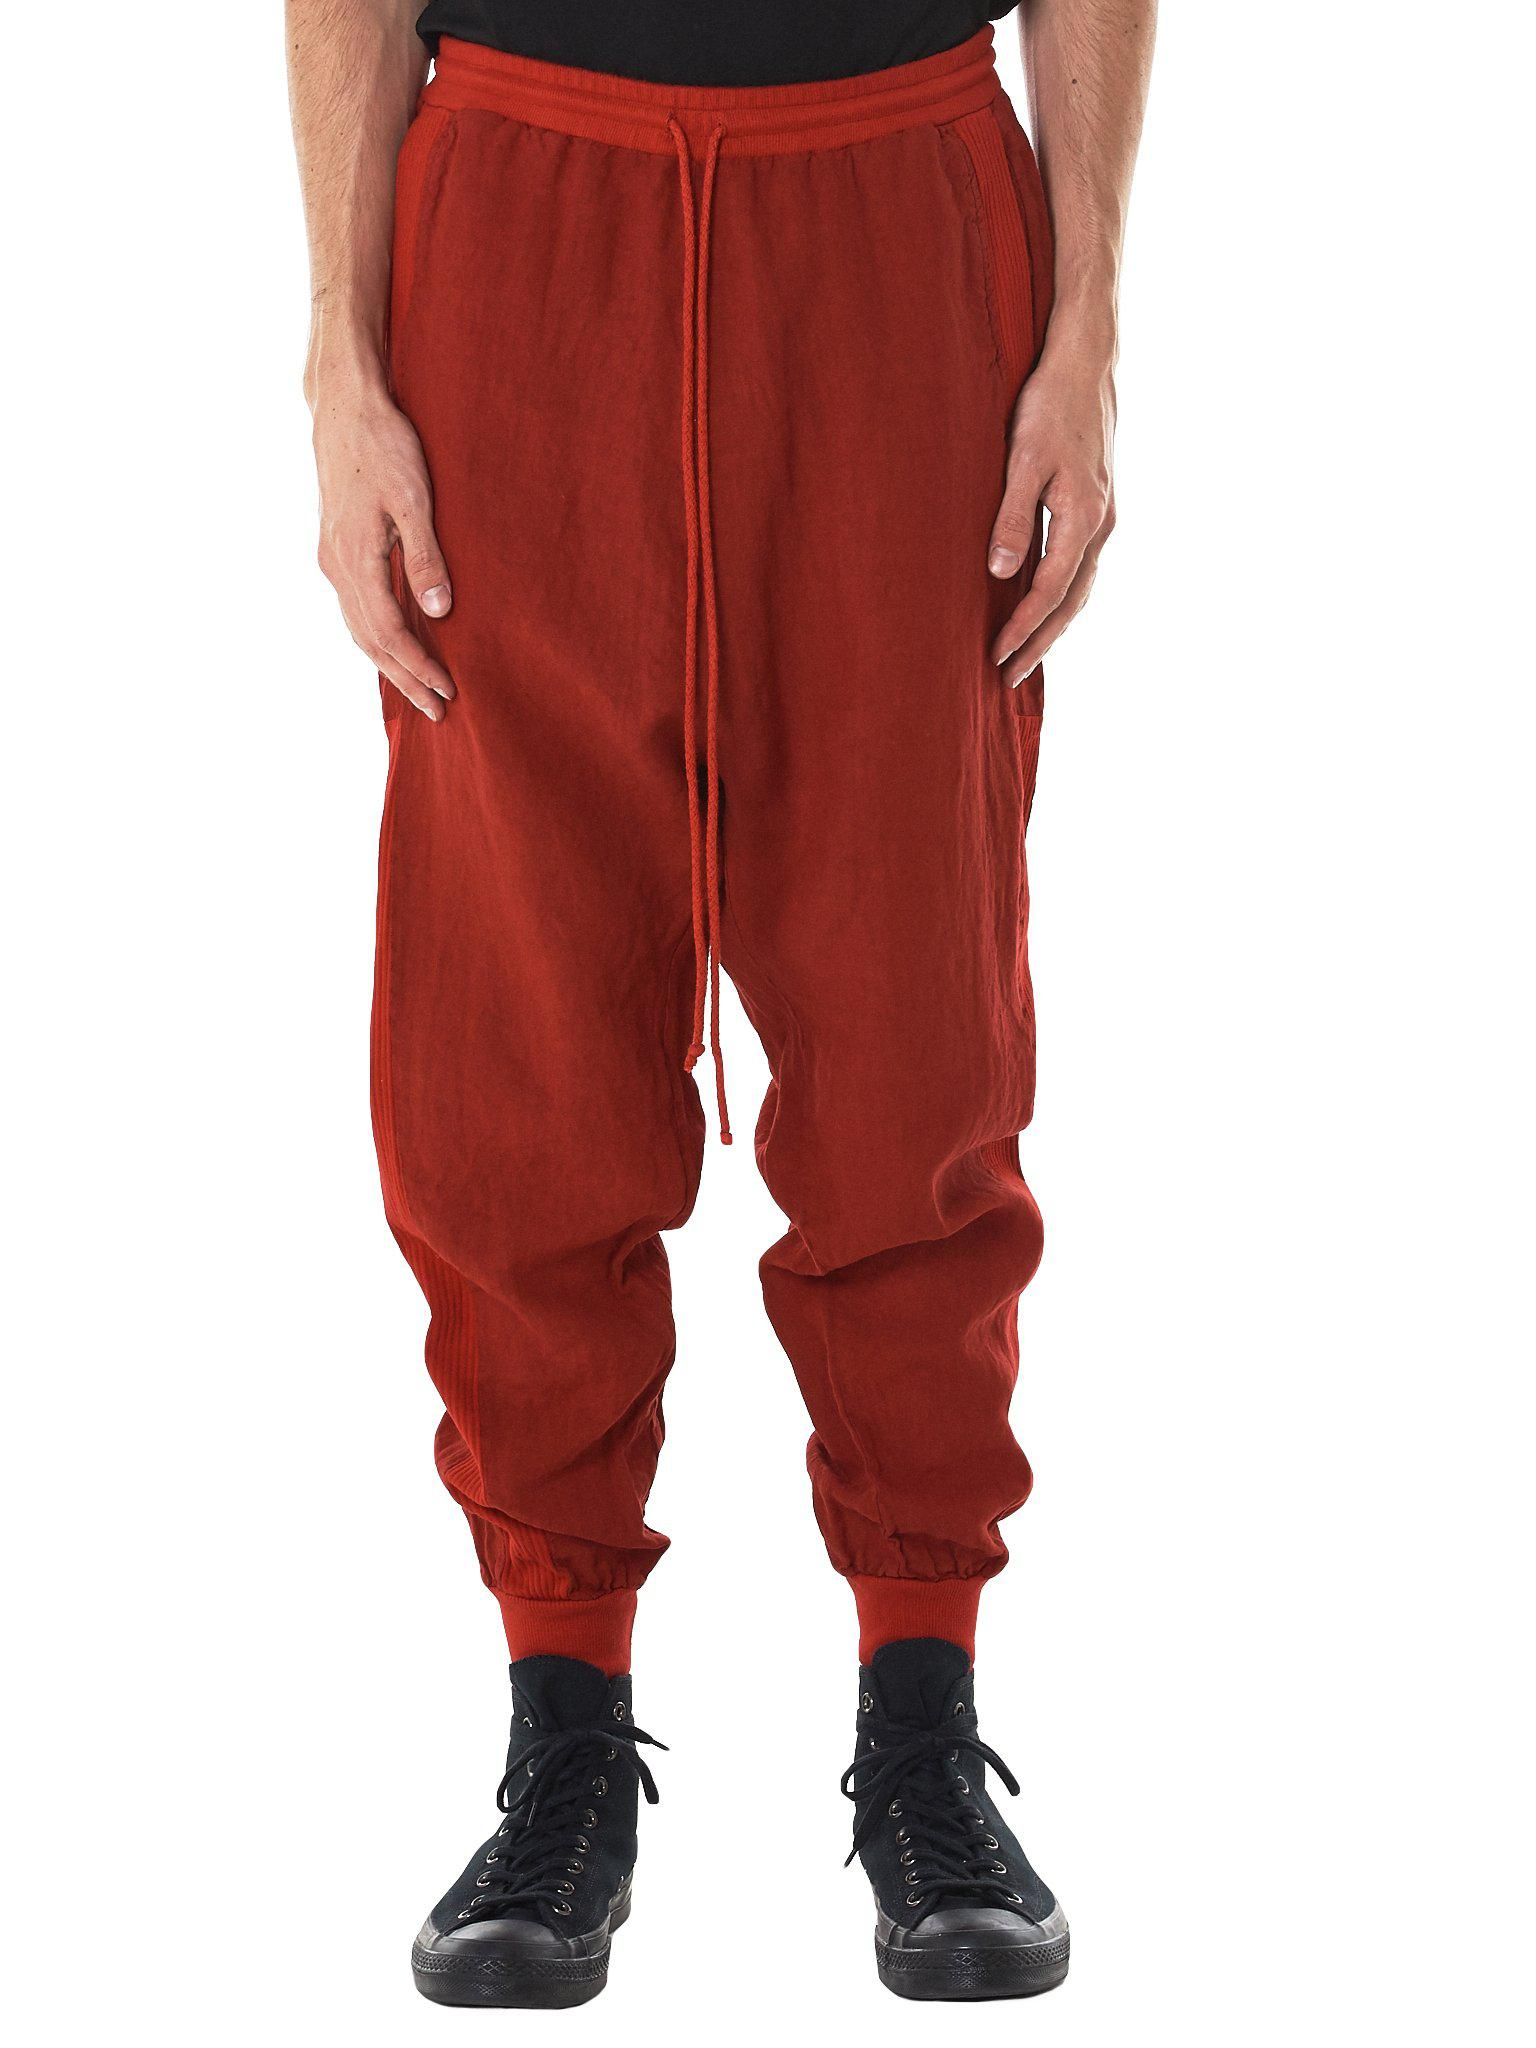 harem trousers - Red Lost And Found Rooms Outlet 2018 Geniue Stockist Online s2WAqYhknw